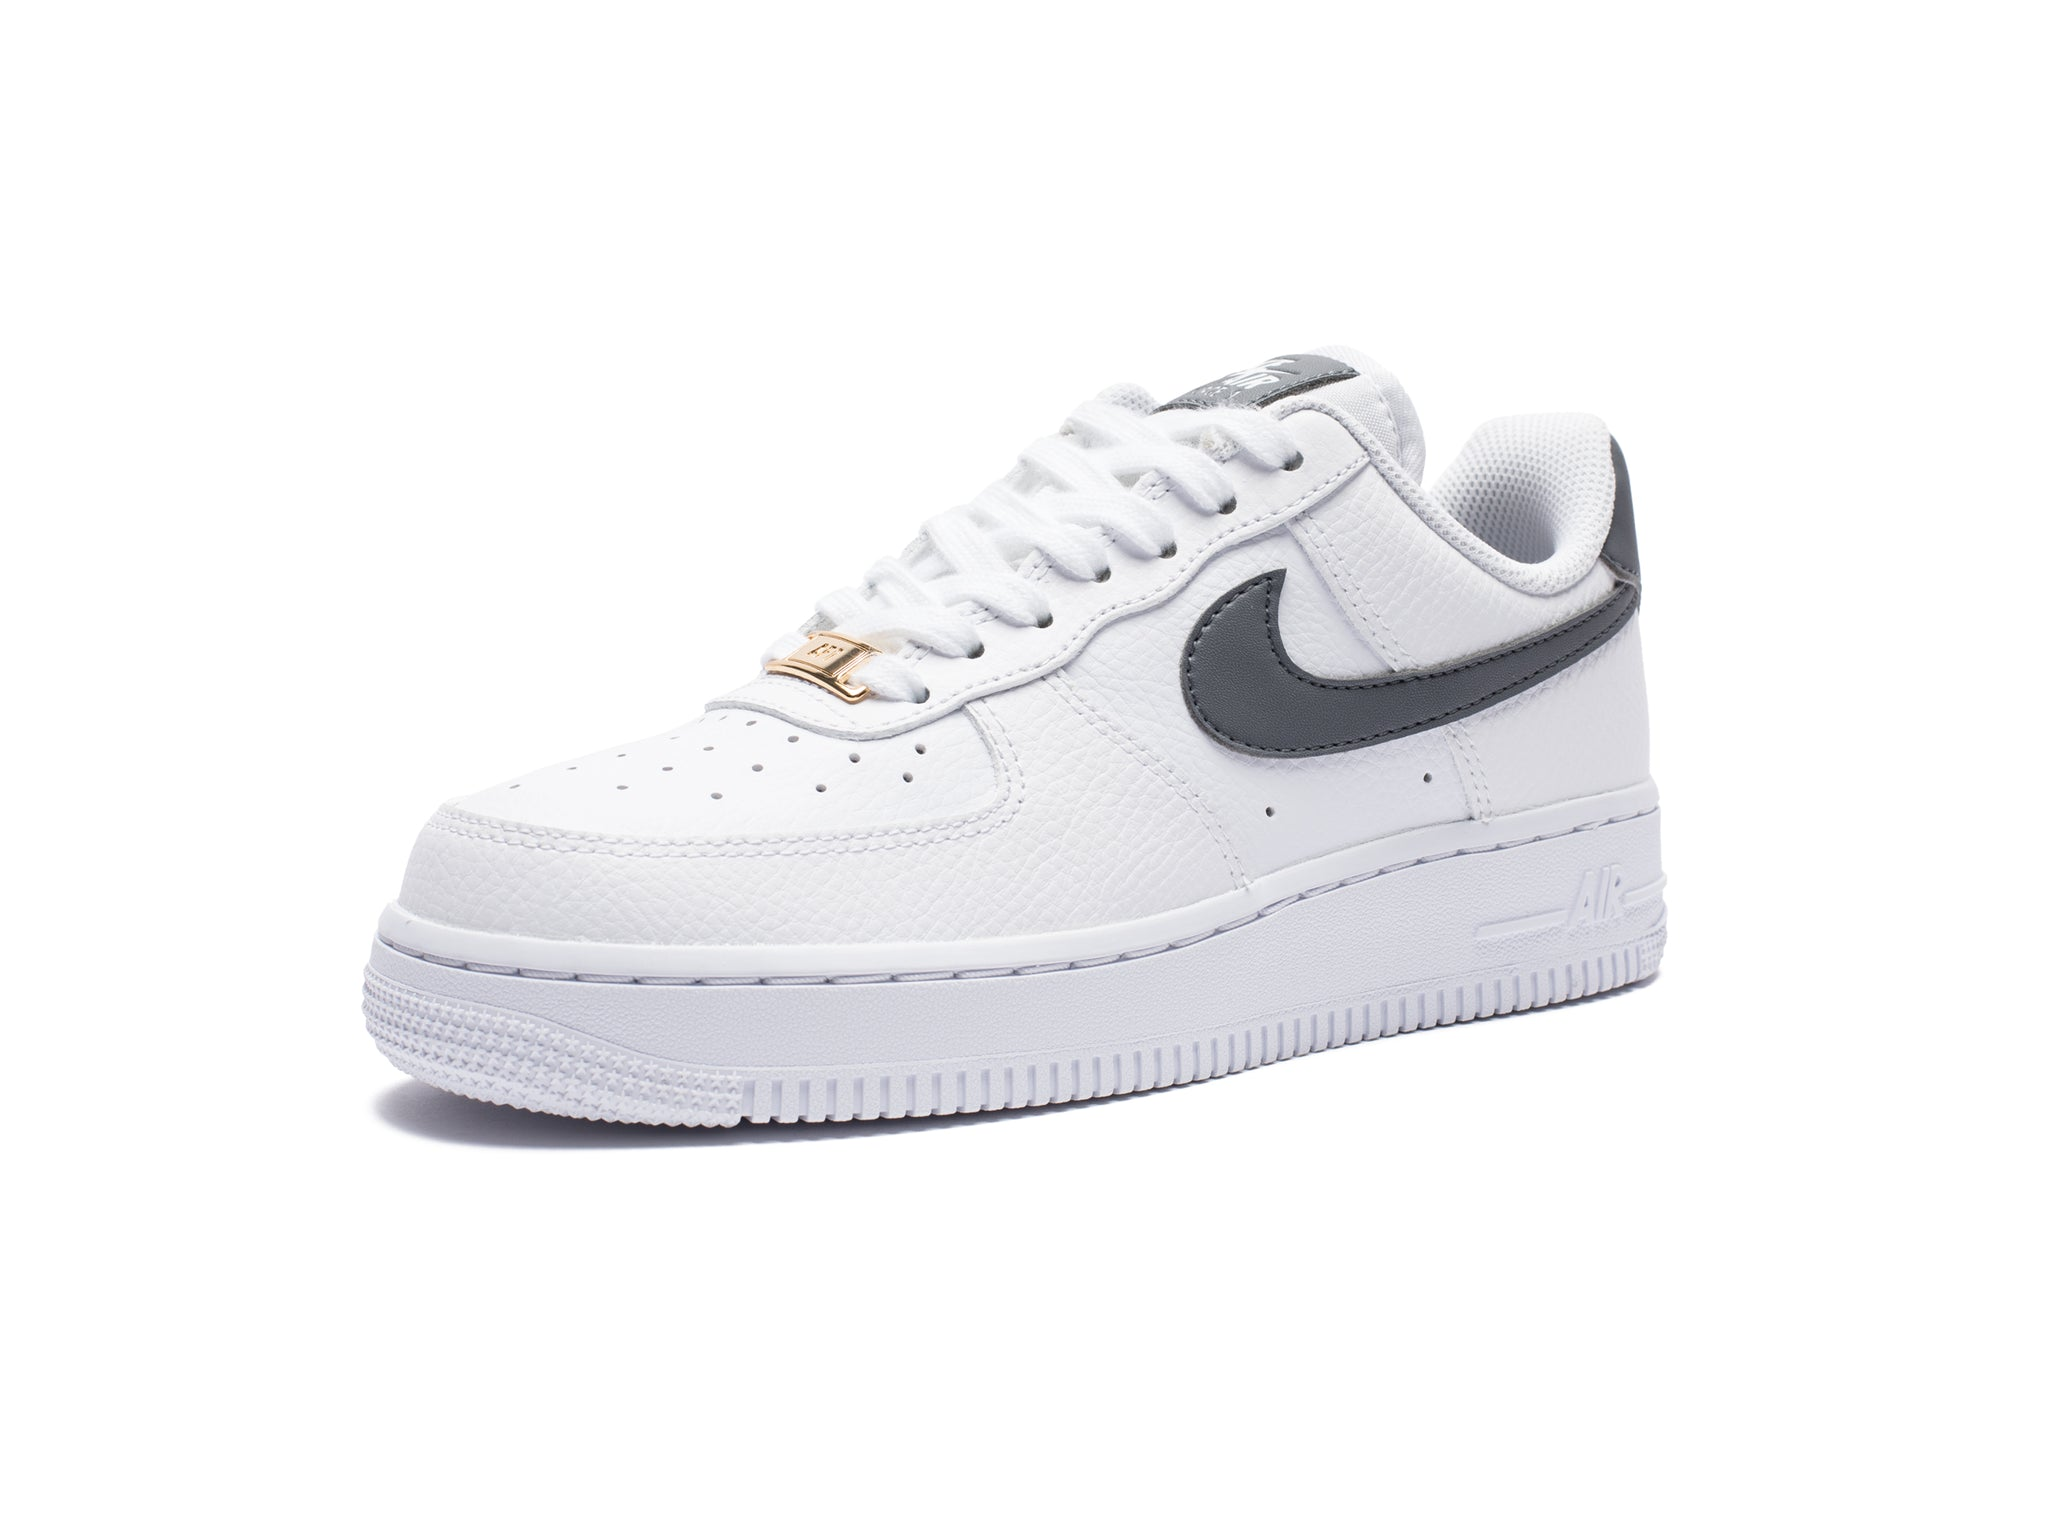 WOMEN'S AIR FORCE 1 '07 - WHITE/COOLGREY/METALLICGOLD